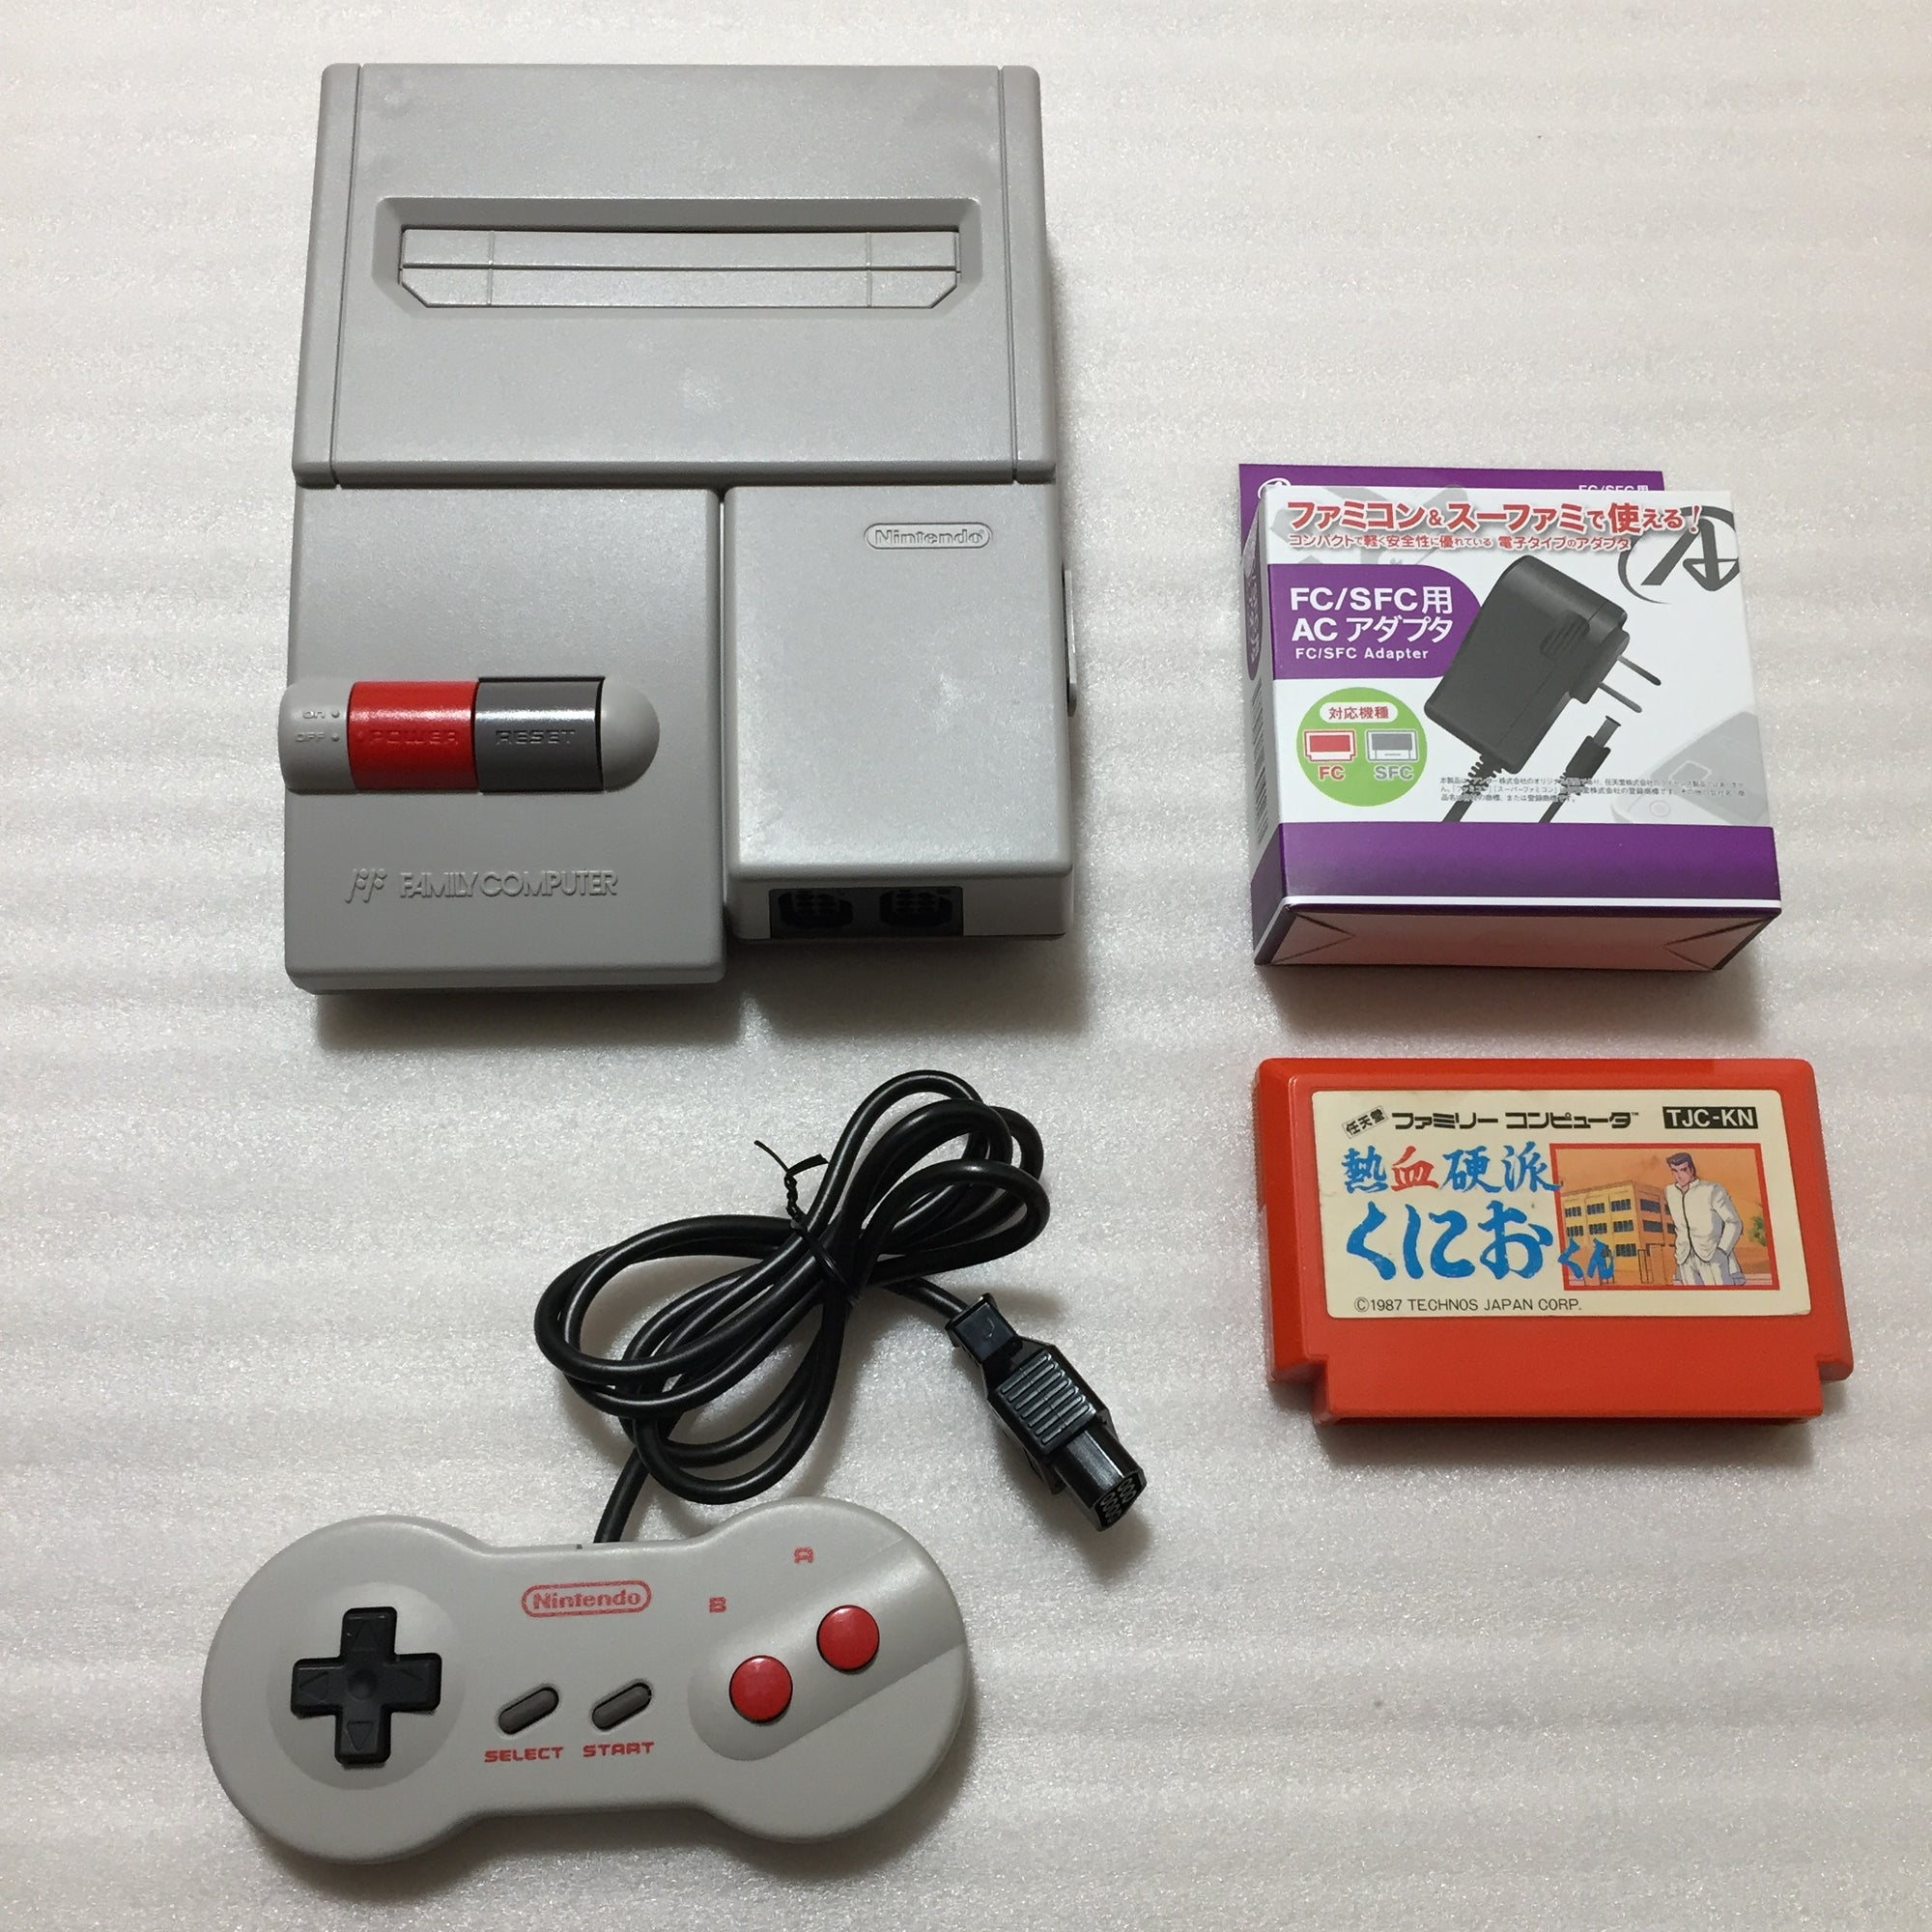 AV Famicom with Hi-Def NES kit - Kunio-kun set